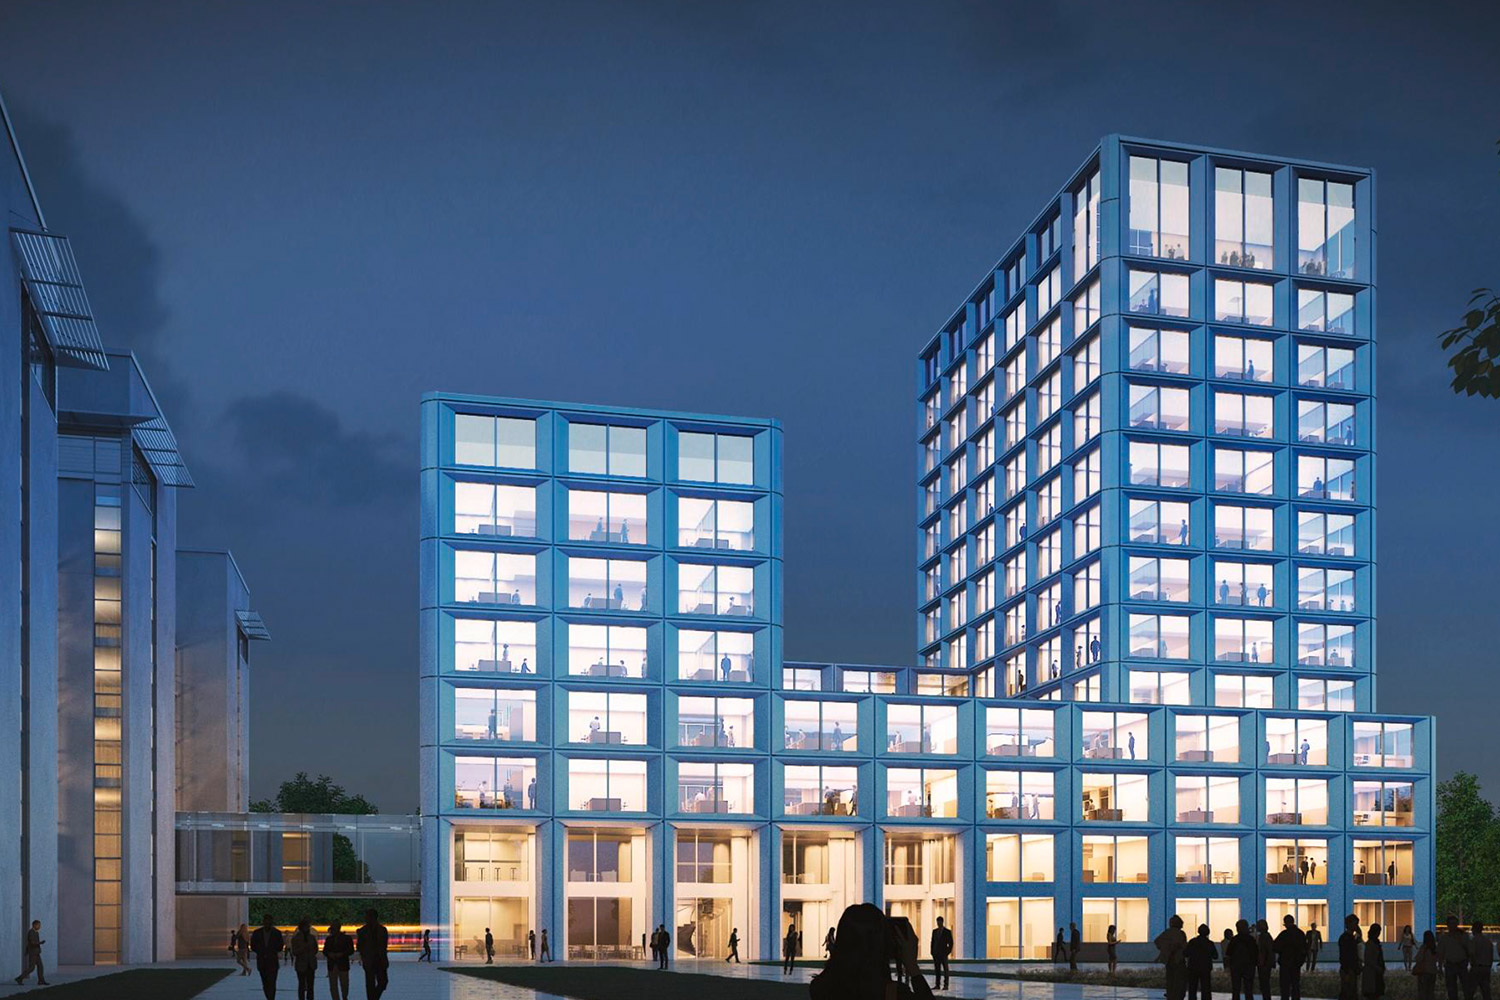 Exterior night-time view of the new Enso headquarters